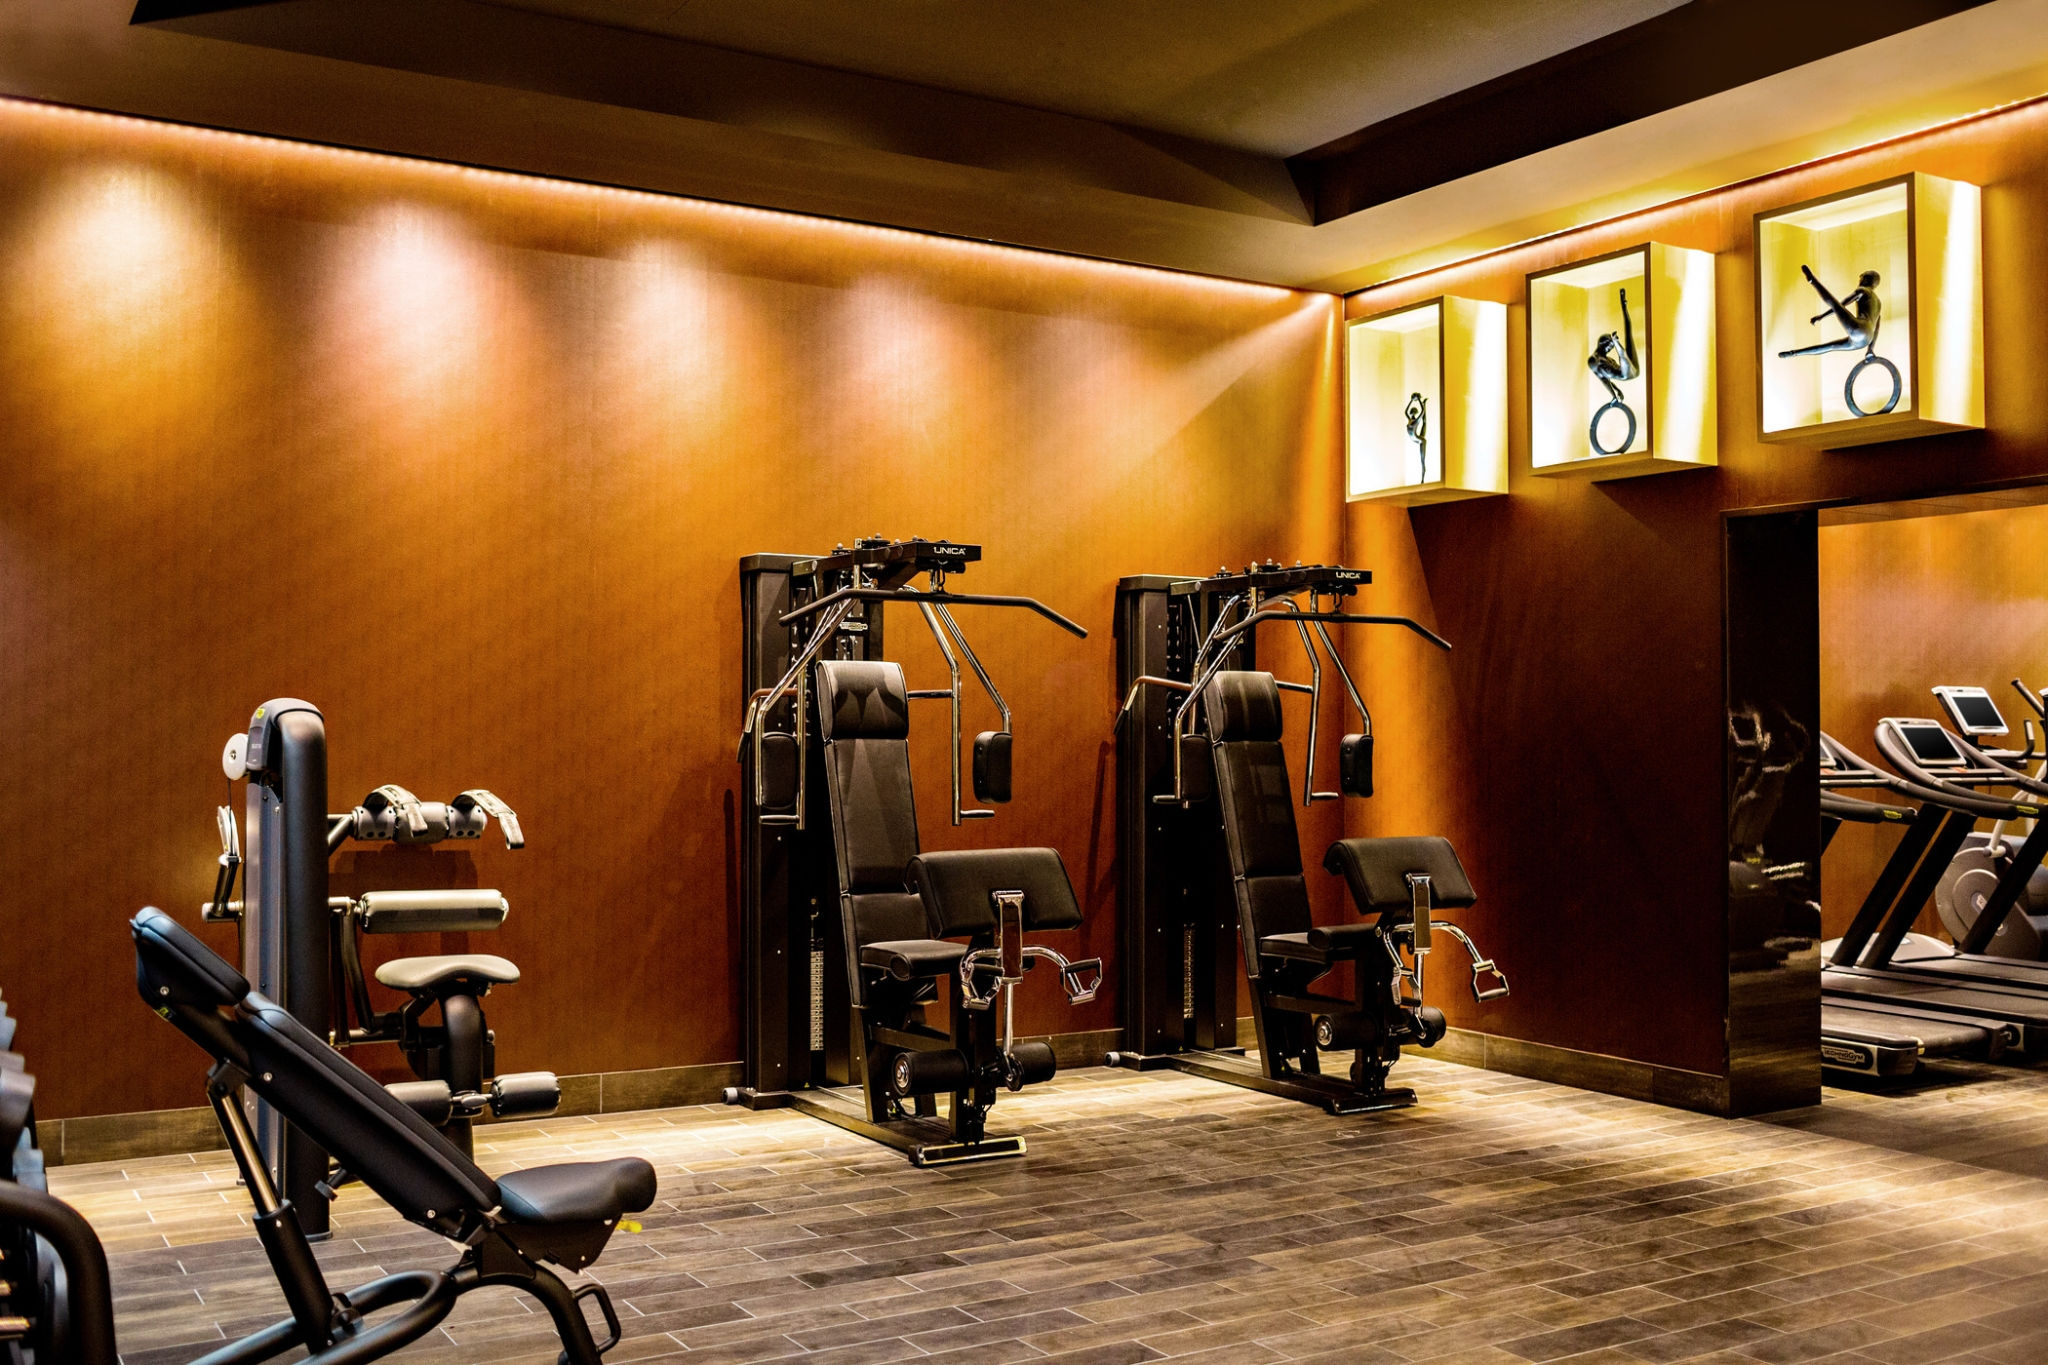 Fitness Center - Prince de Galles